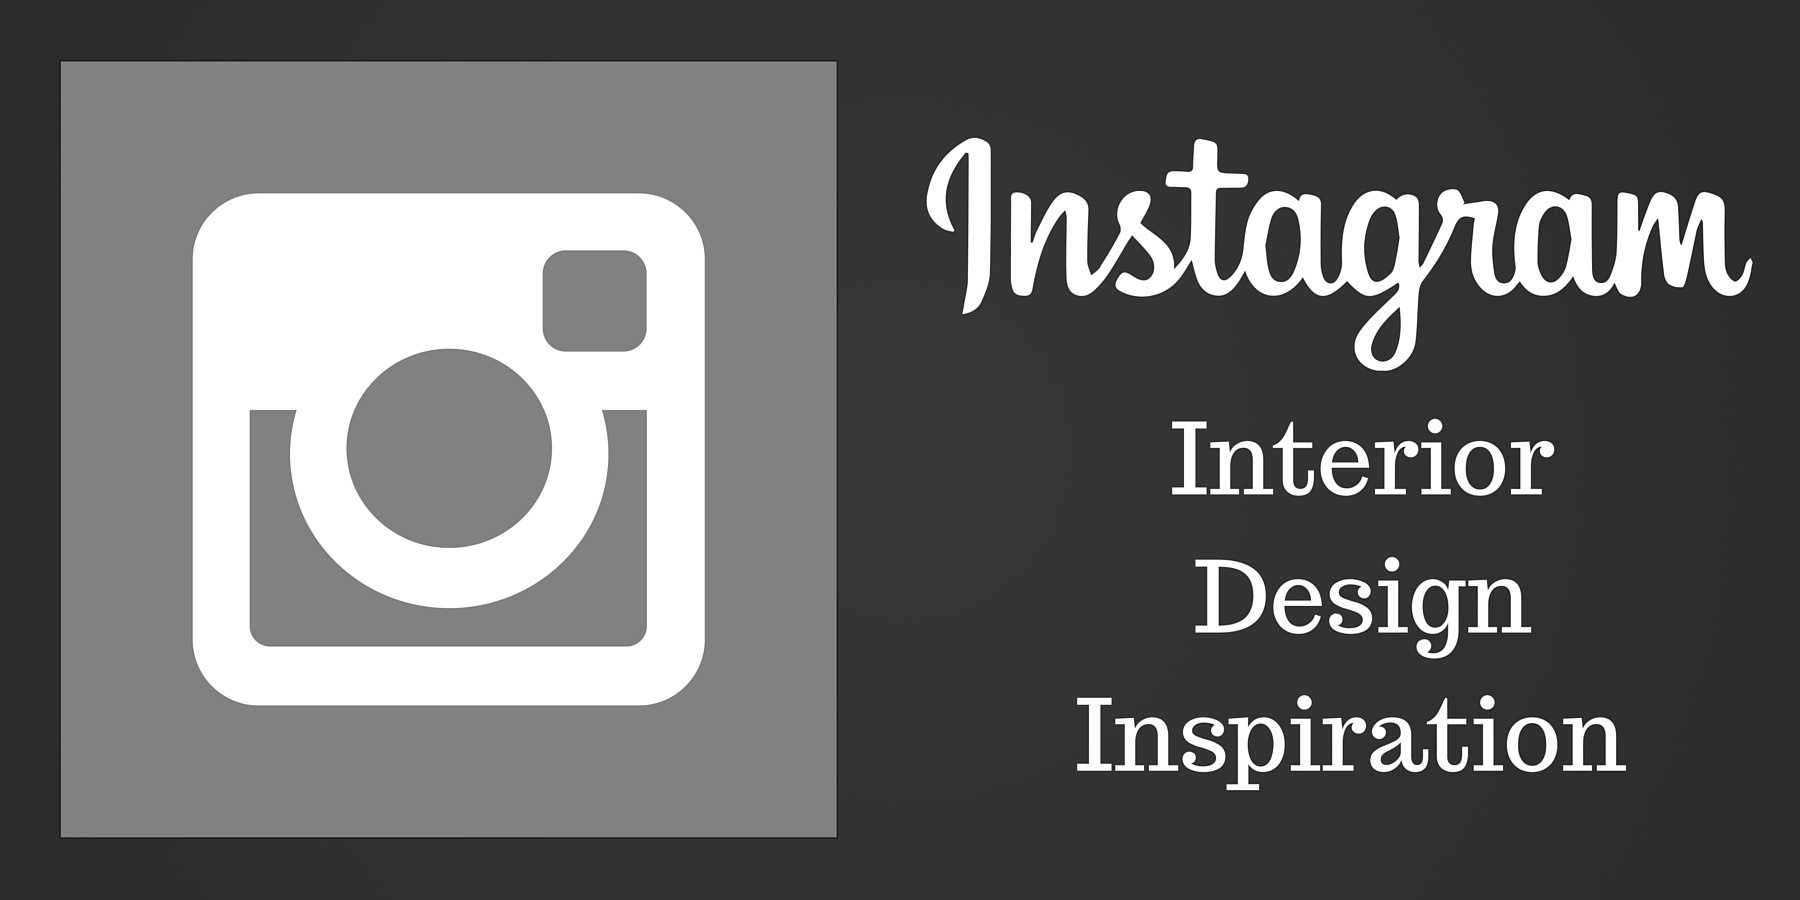 Burlanes Interiors - Interior Design Inspiration on Instagram